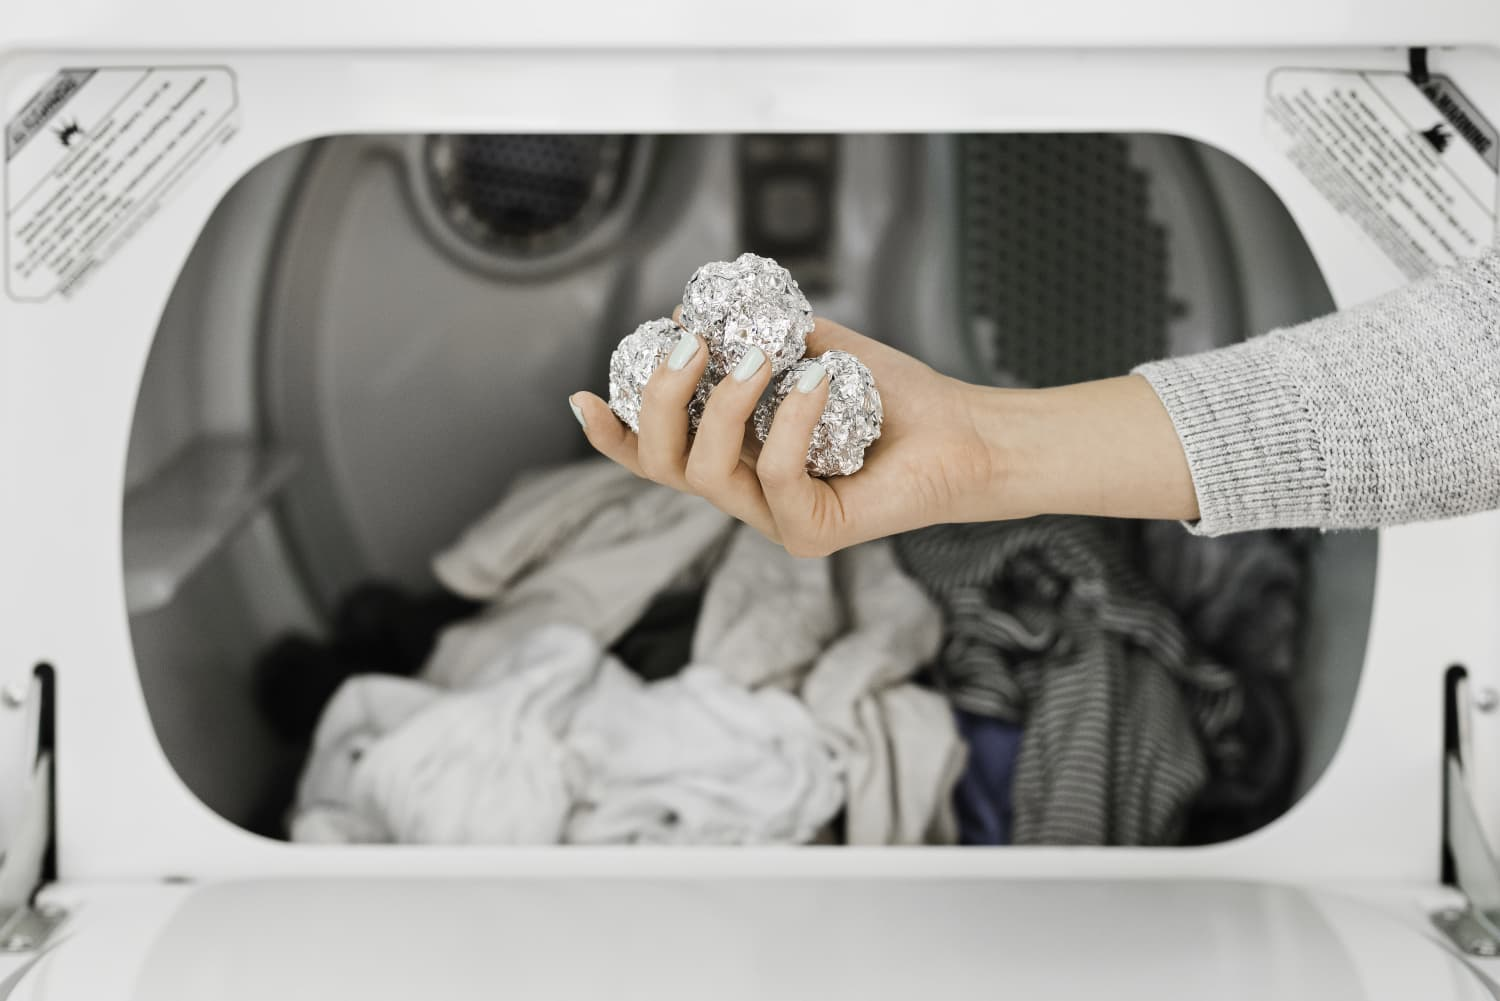 The Weird Reason Some People Are Putting Aluminum Foil in Their Dryers